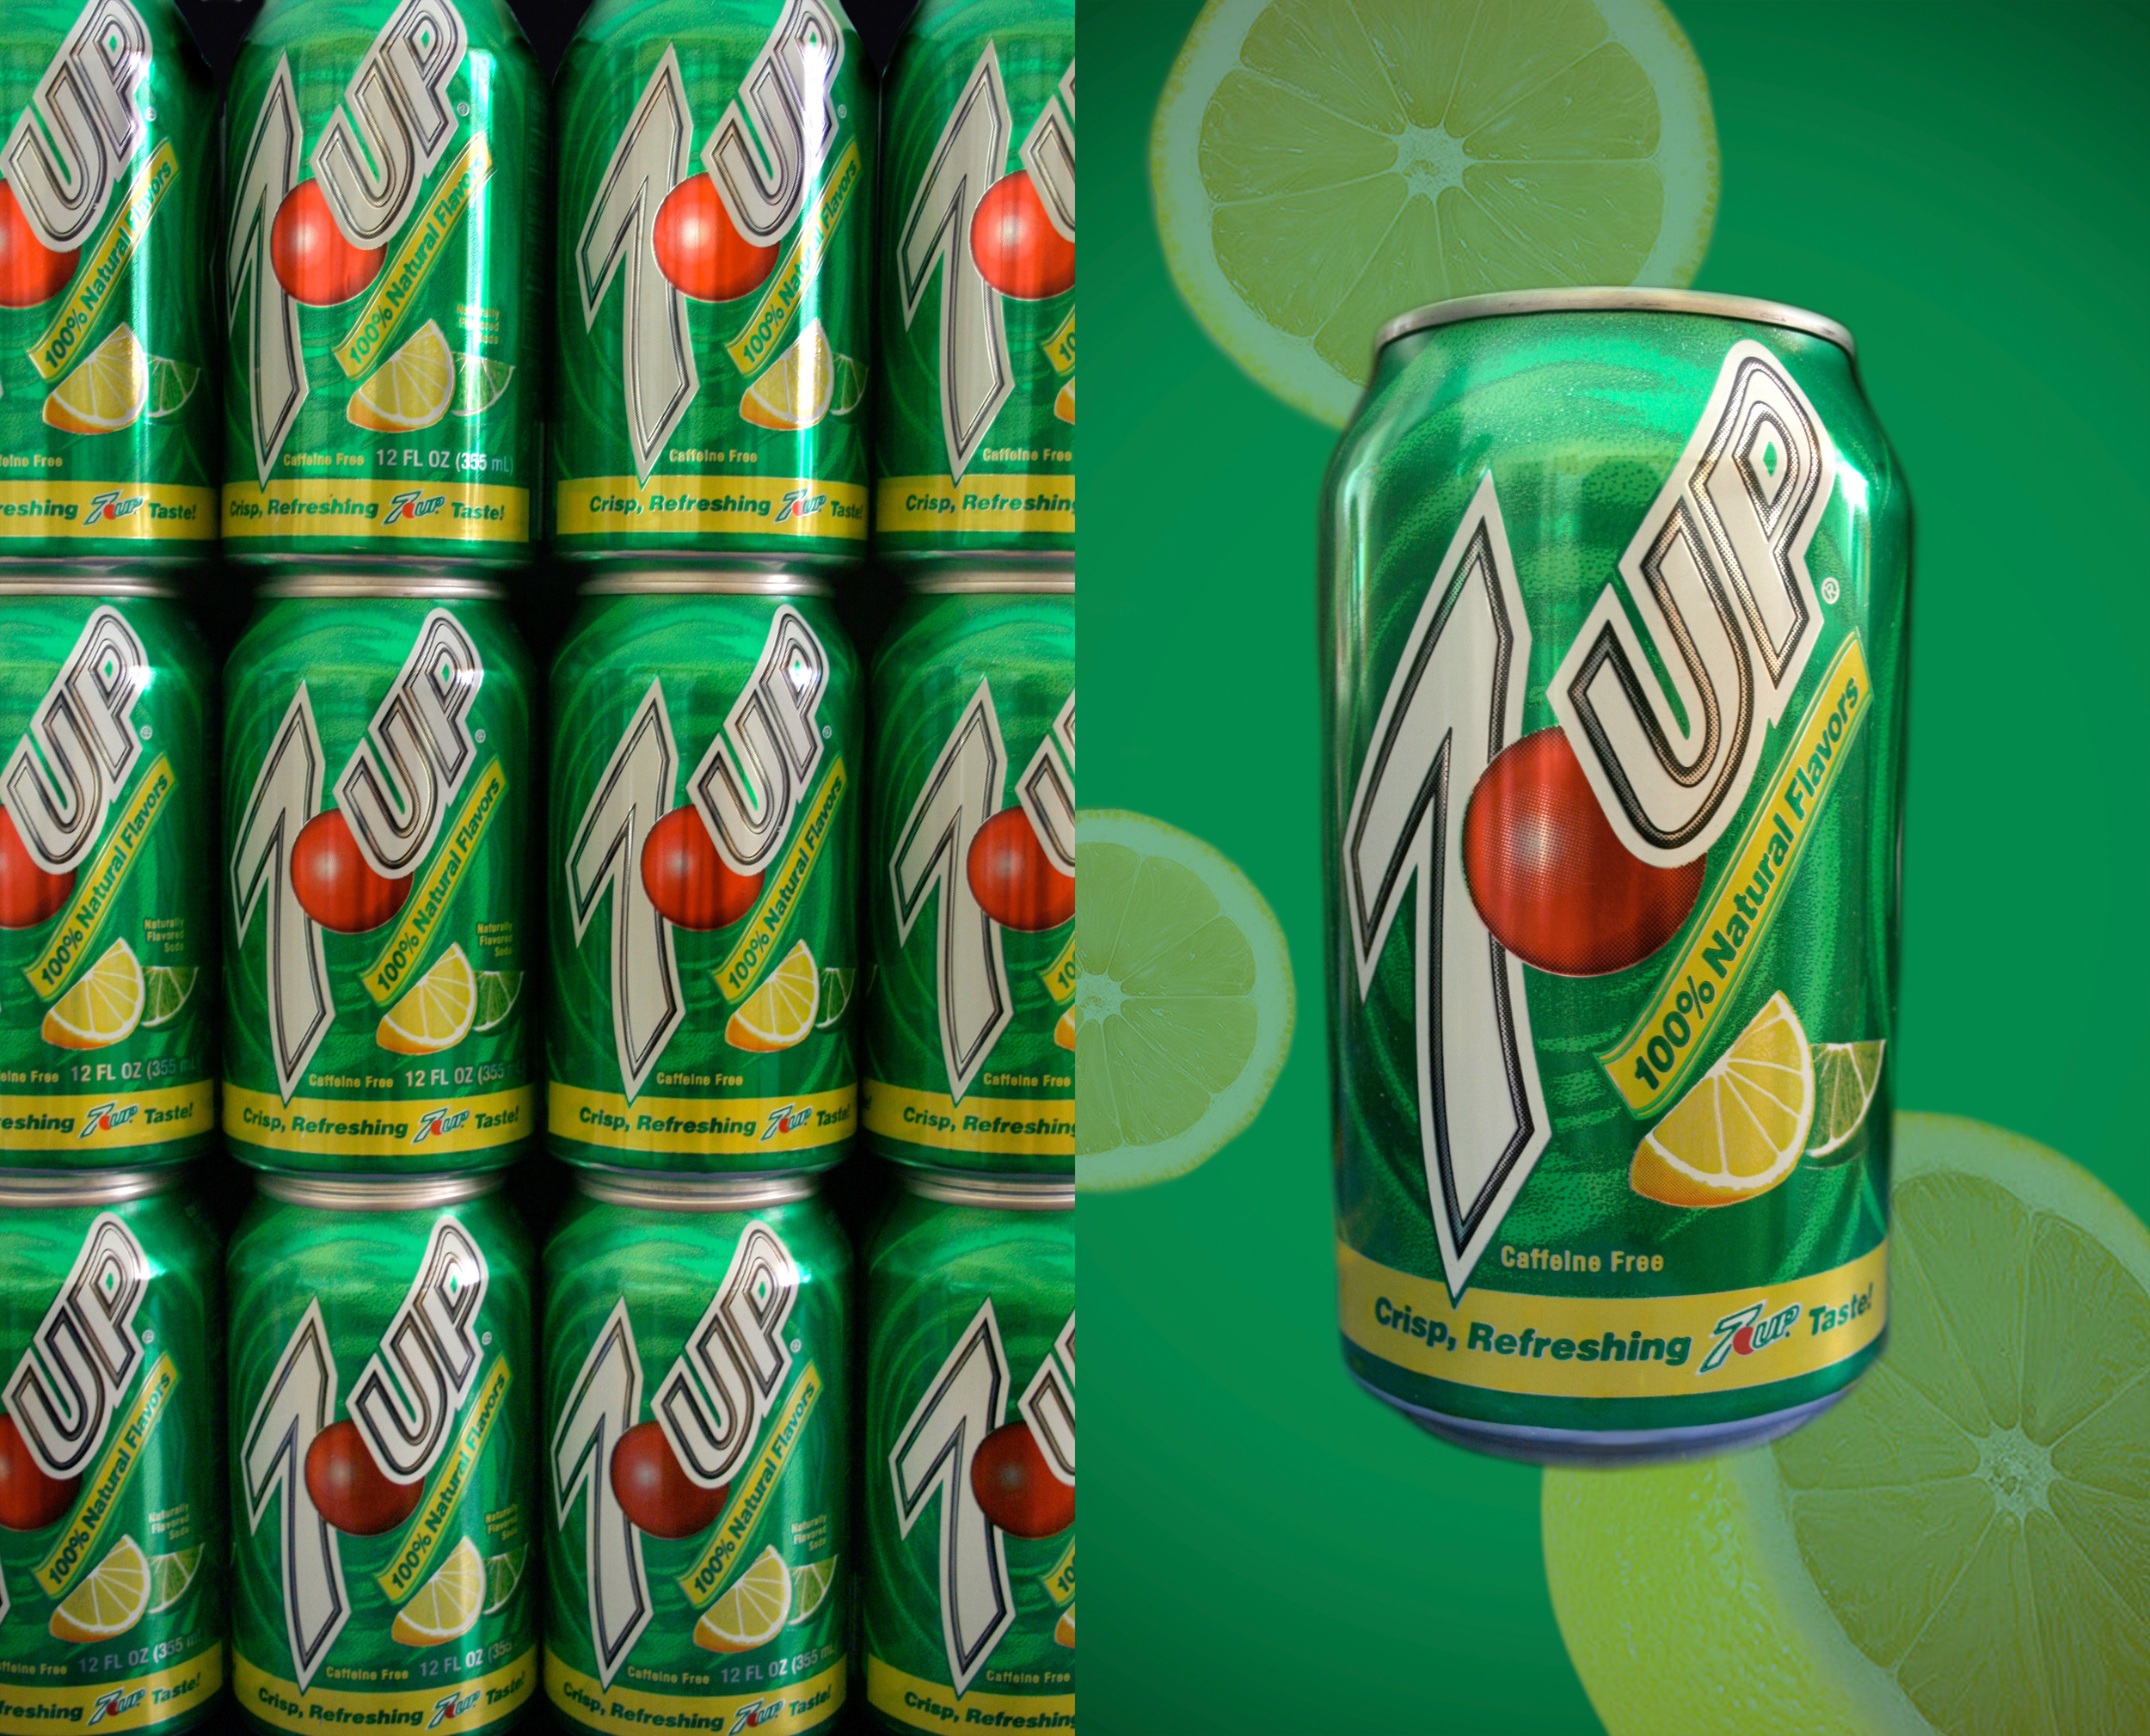 Diptych study on modern product advertisement (7Up)